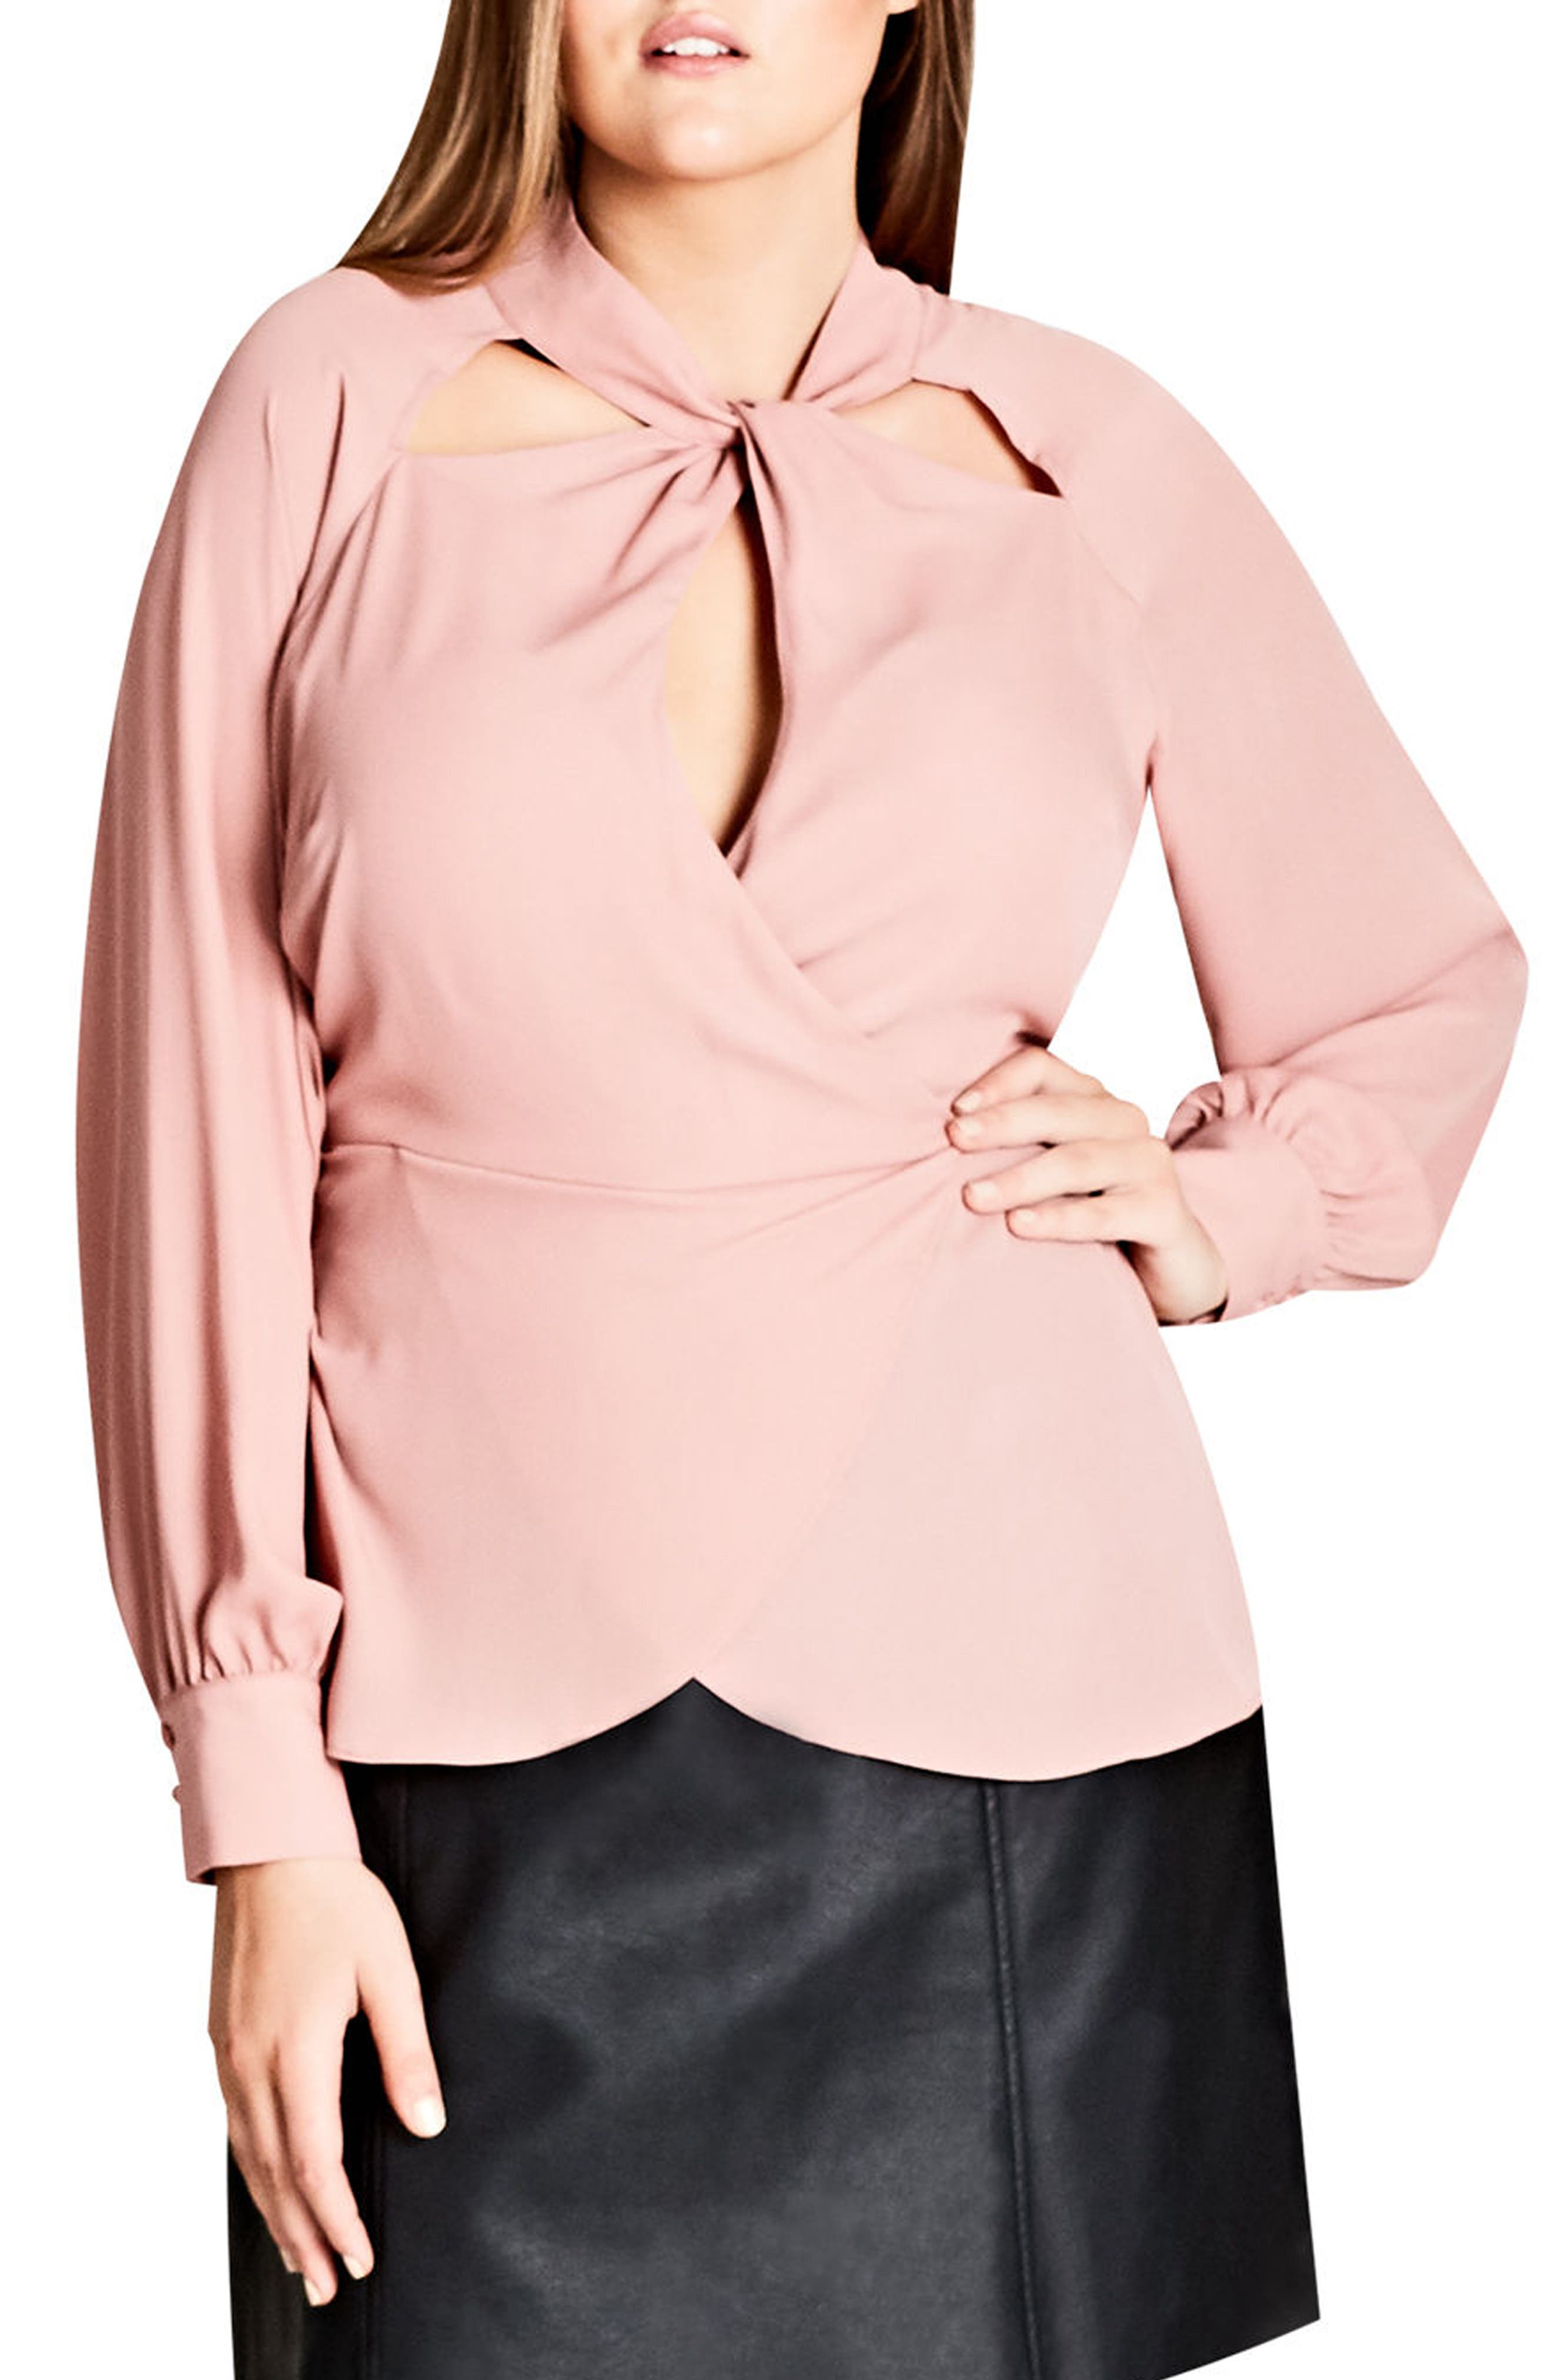 Alternate Image 1 Selected - City Chic Peek Through Faux Wrap Top (Plus Size)